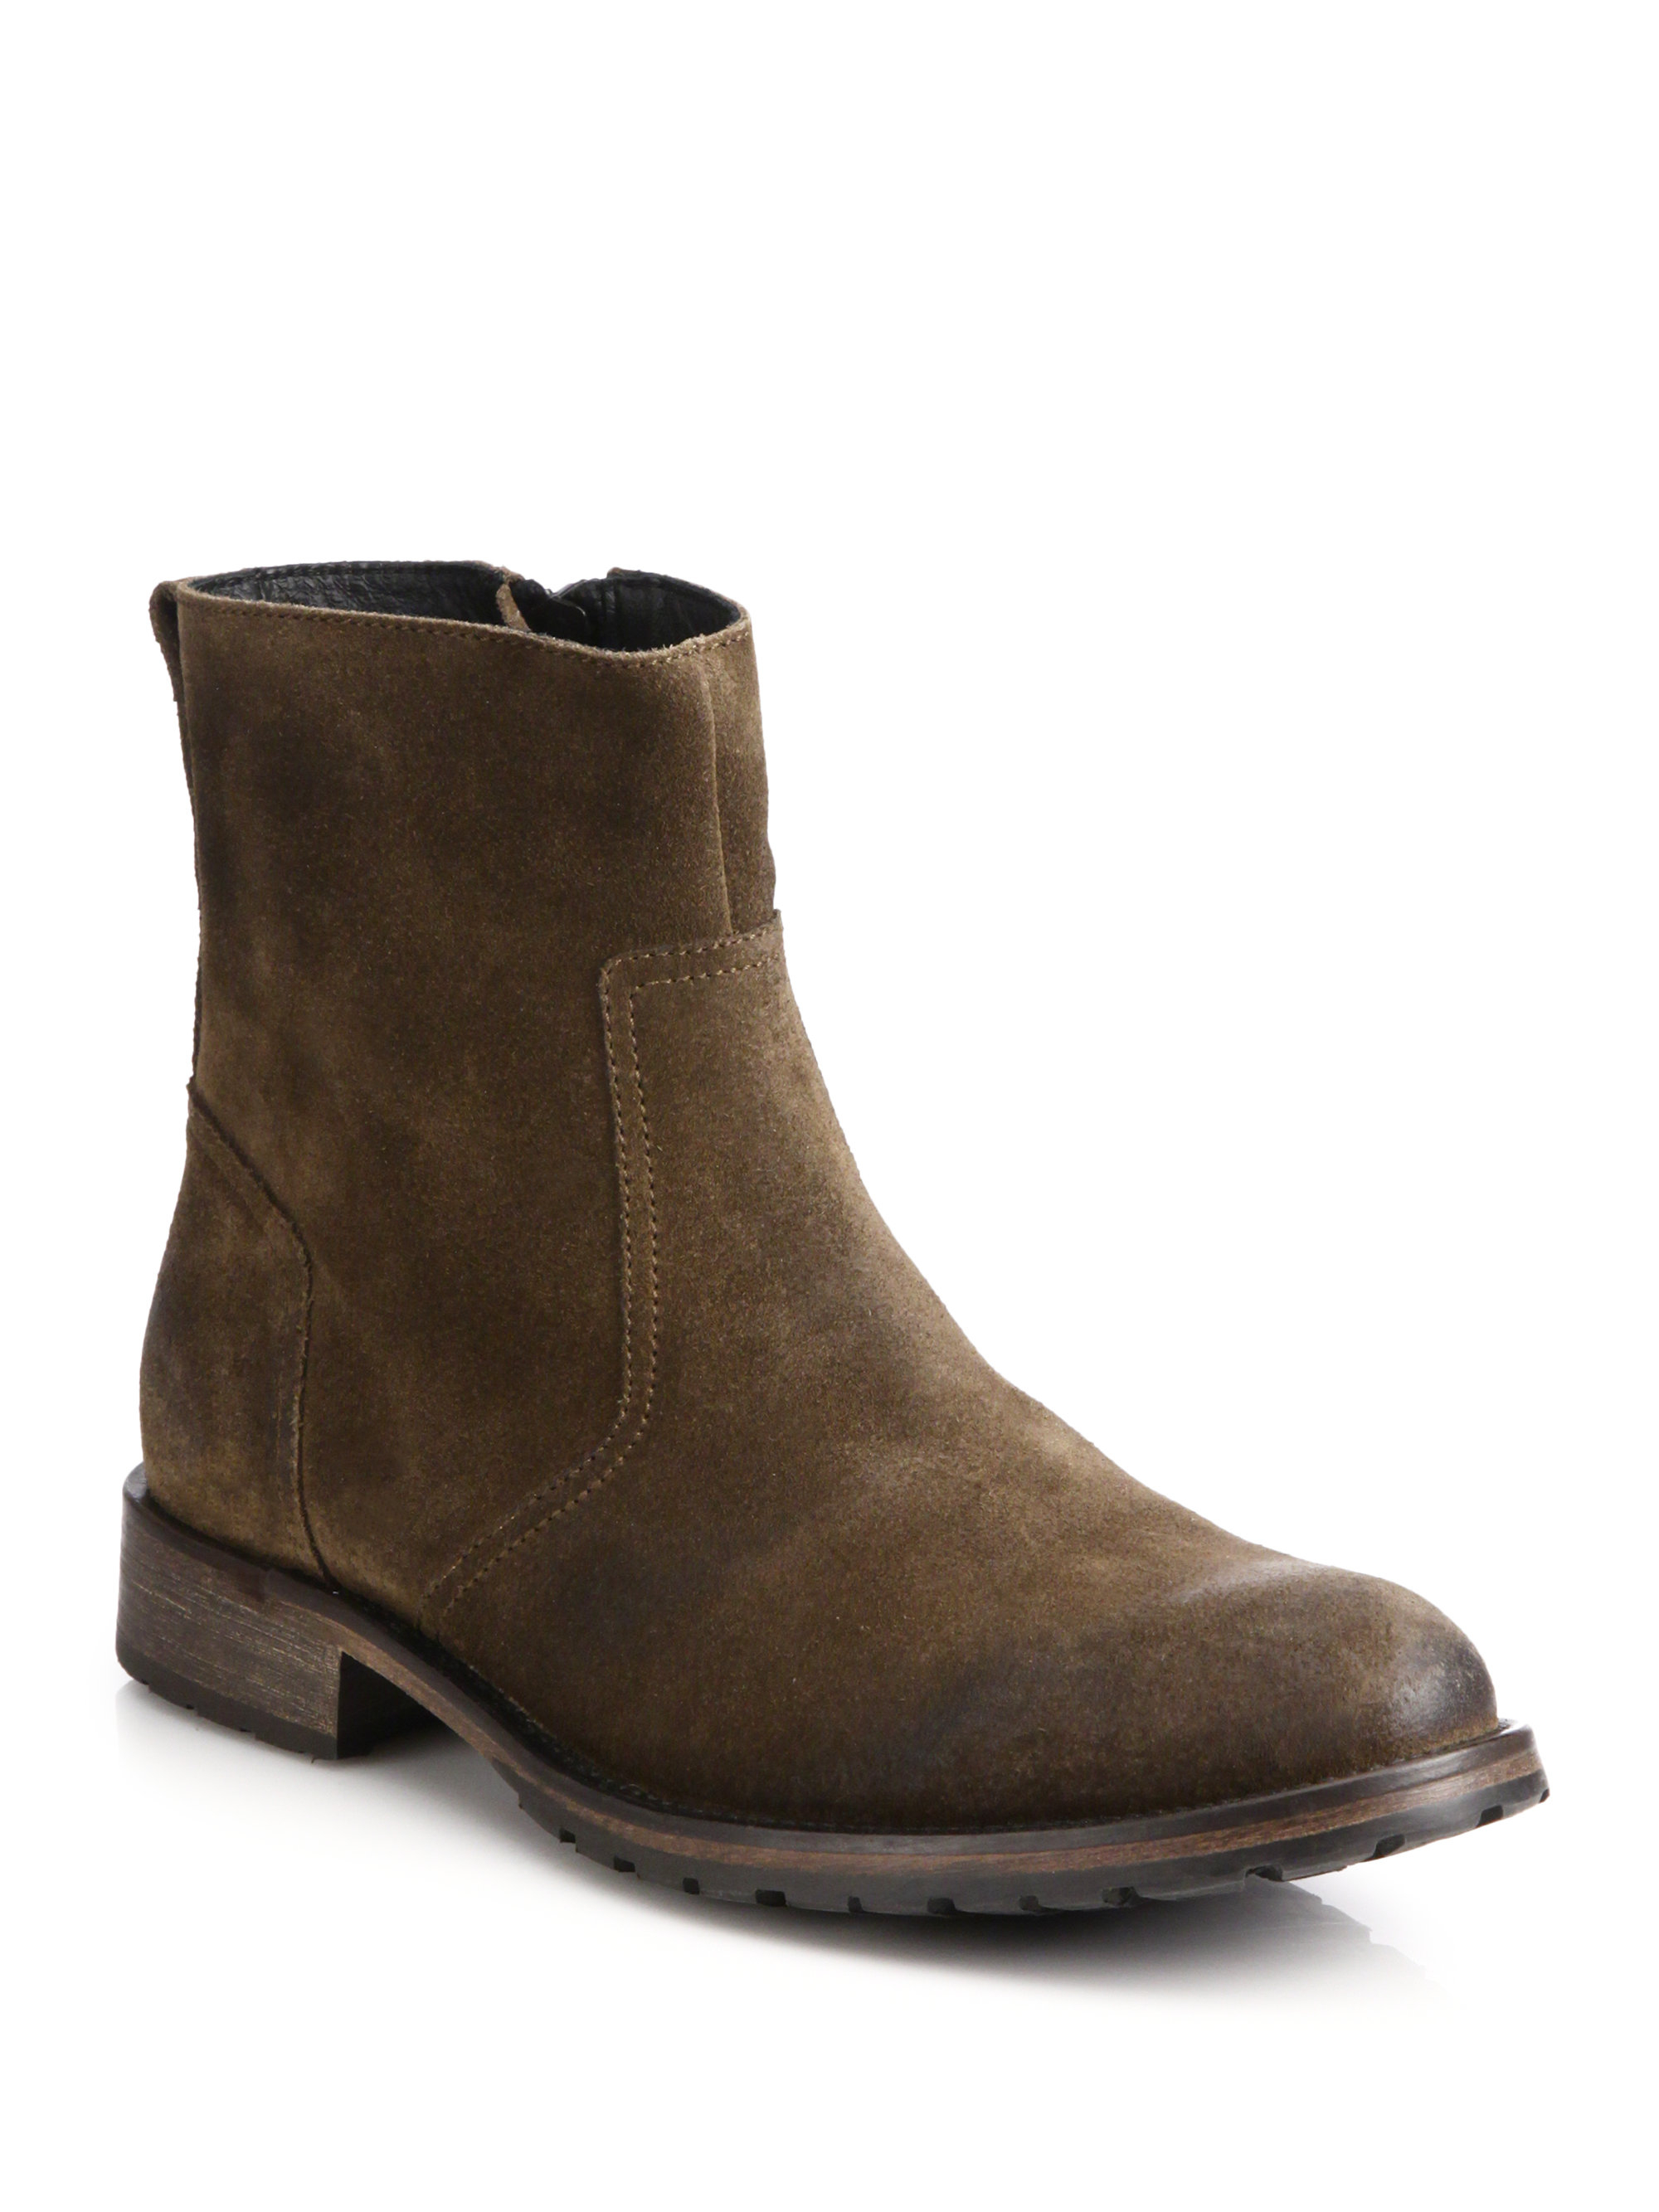 belstaff attwell suede ankle boots in brown for lyst